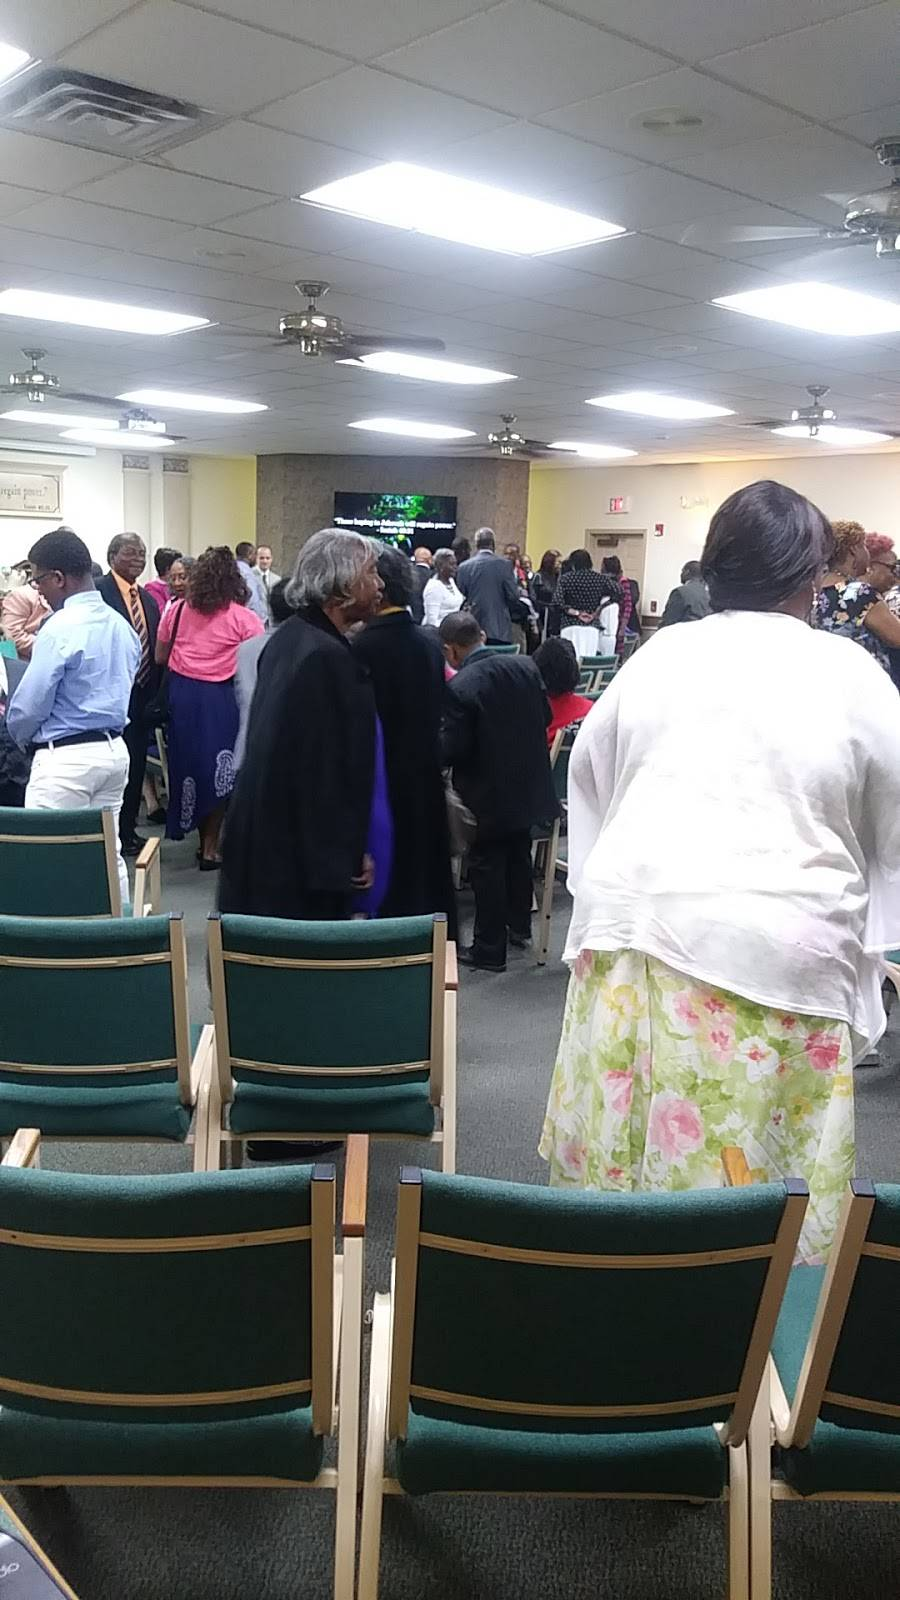 Jehovahs Witnesses - church  | Photo 6 of 6 | Address: 3755 Range Line Rd, Memphis, TN 38127, USA | Phone: (901) 358-4773